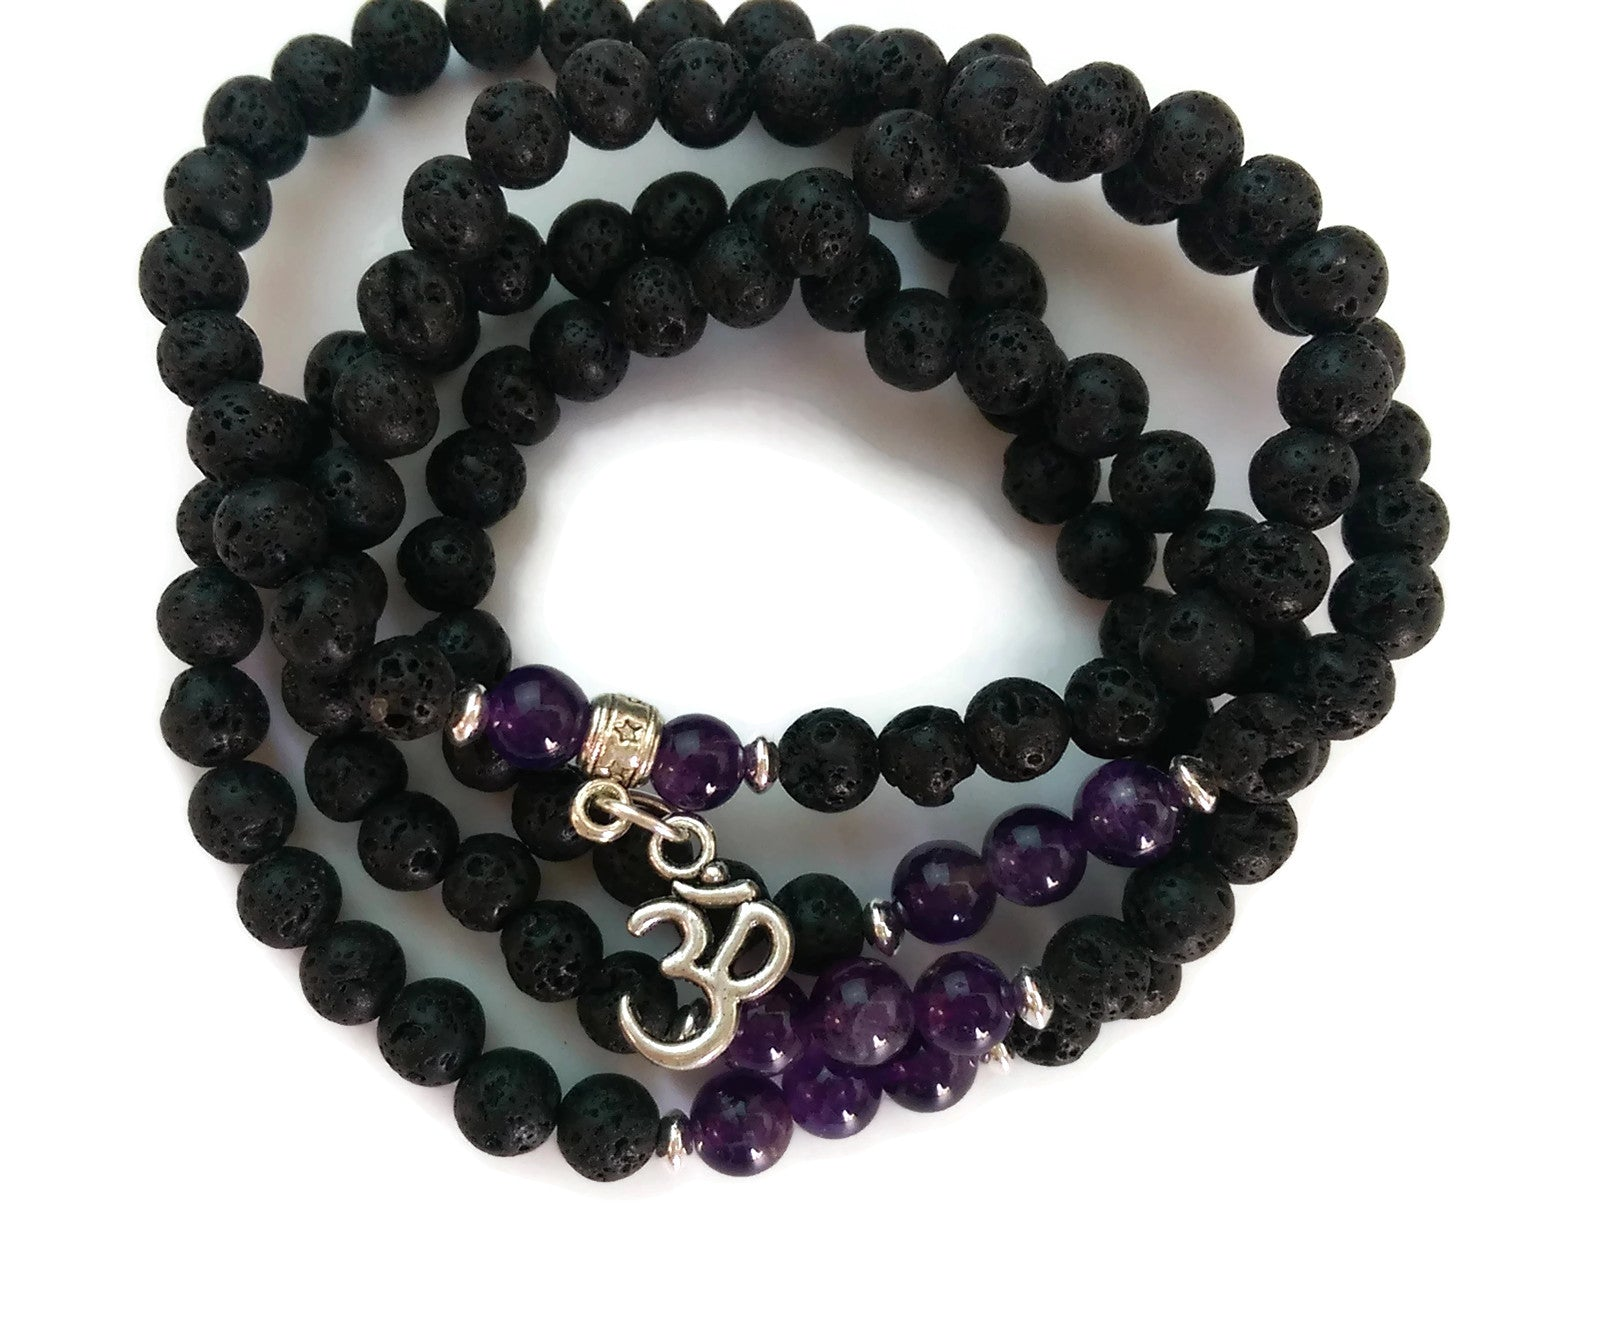 6mm Lava and Amethyst with 925 Silver Wrist Wrap Mala Bracelet with Om Charm